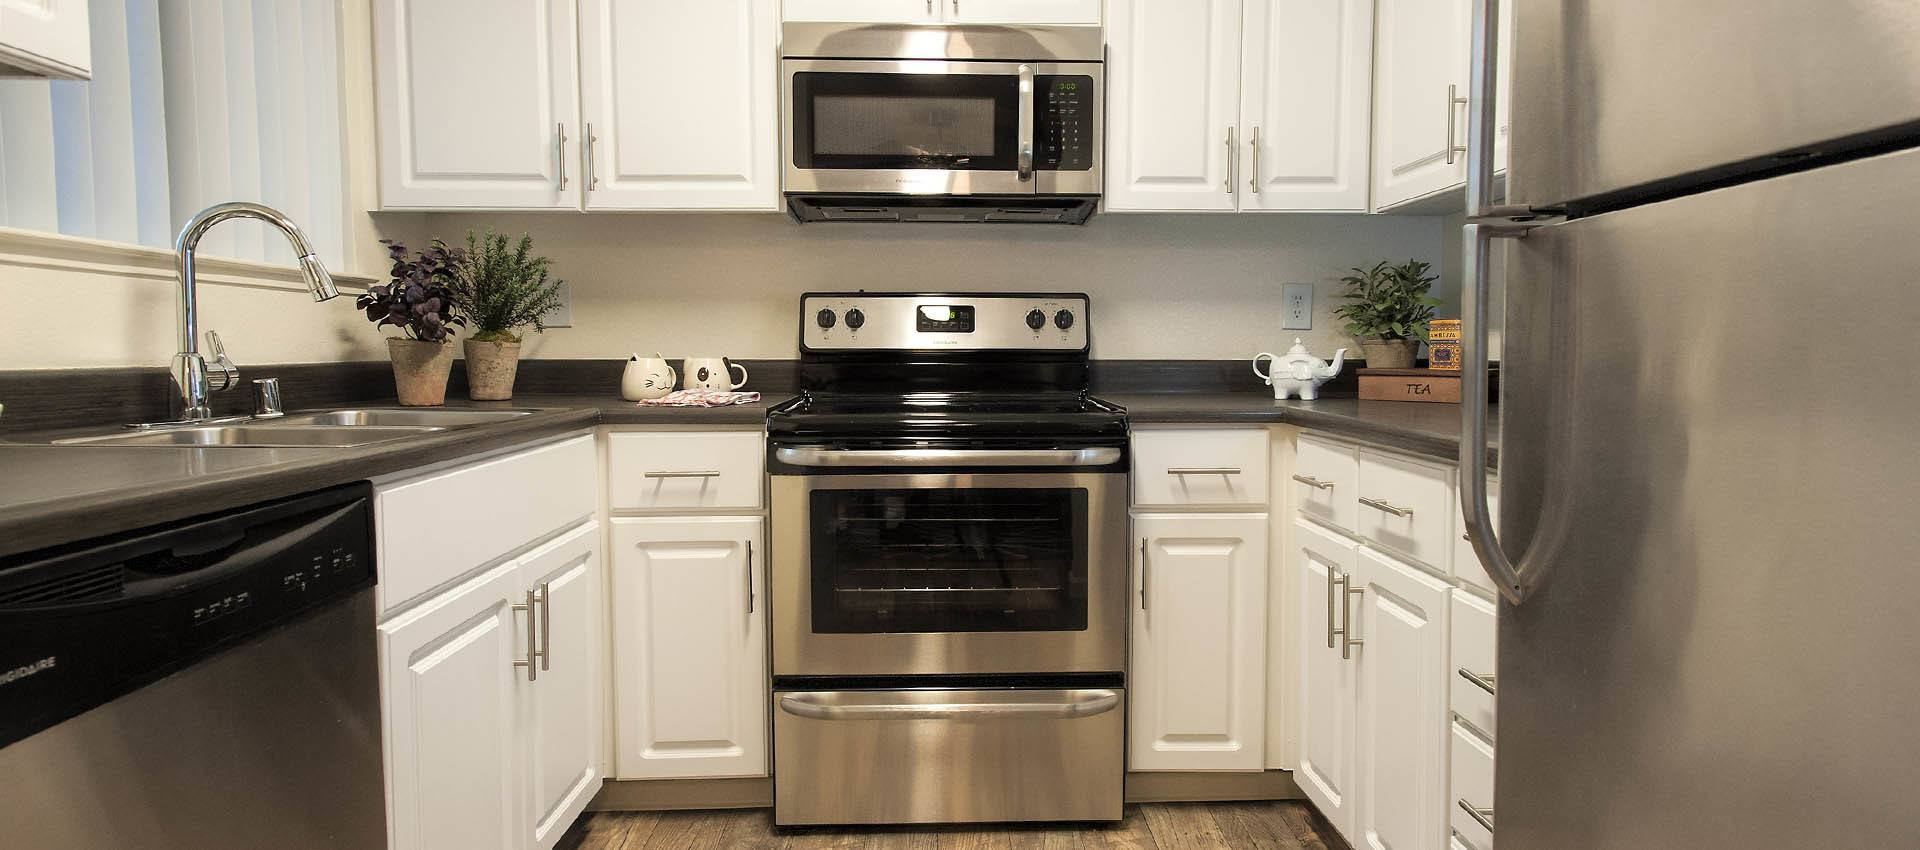 Kitchen With Stainless Appliances at Hidden Lake Condominium Rentals in Sacramento, CA